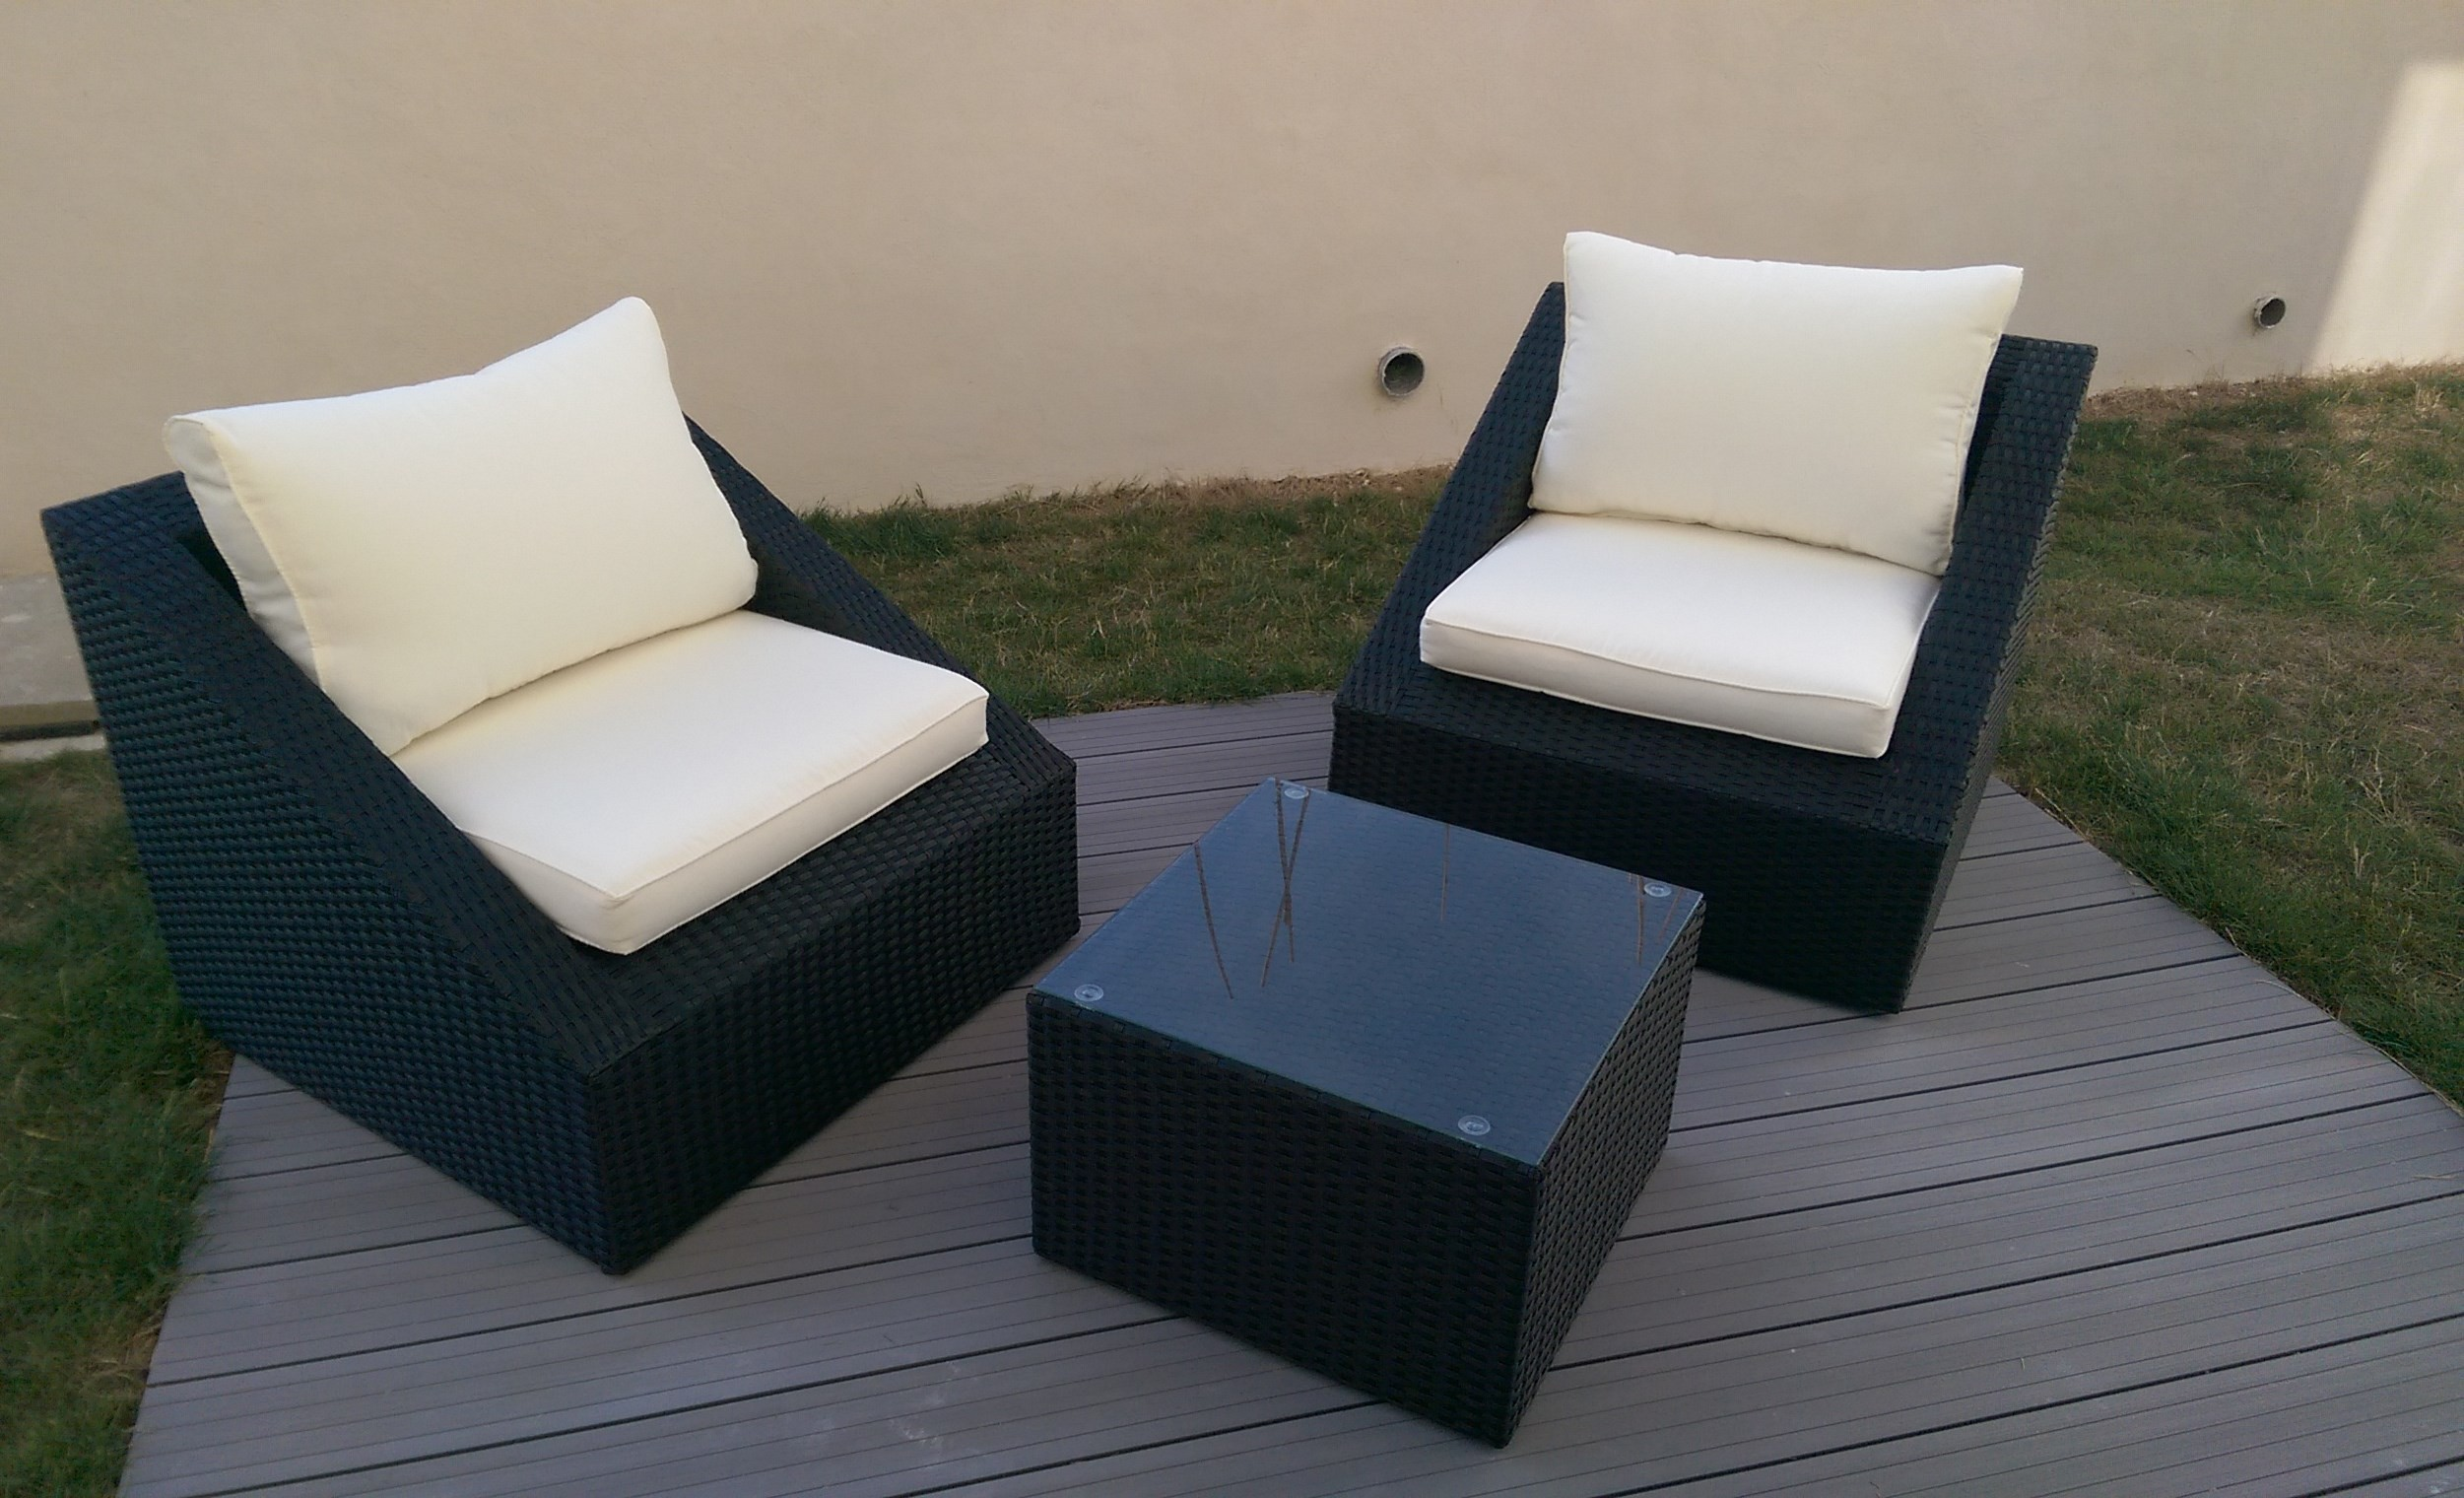 fauteuil salon de jardin resine tressee royal sofa id e de canap et meuble maison. Black Bedroom Furniture Sets. Home Design Ideas